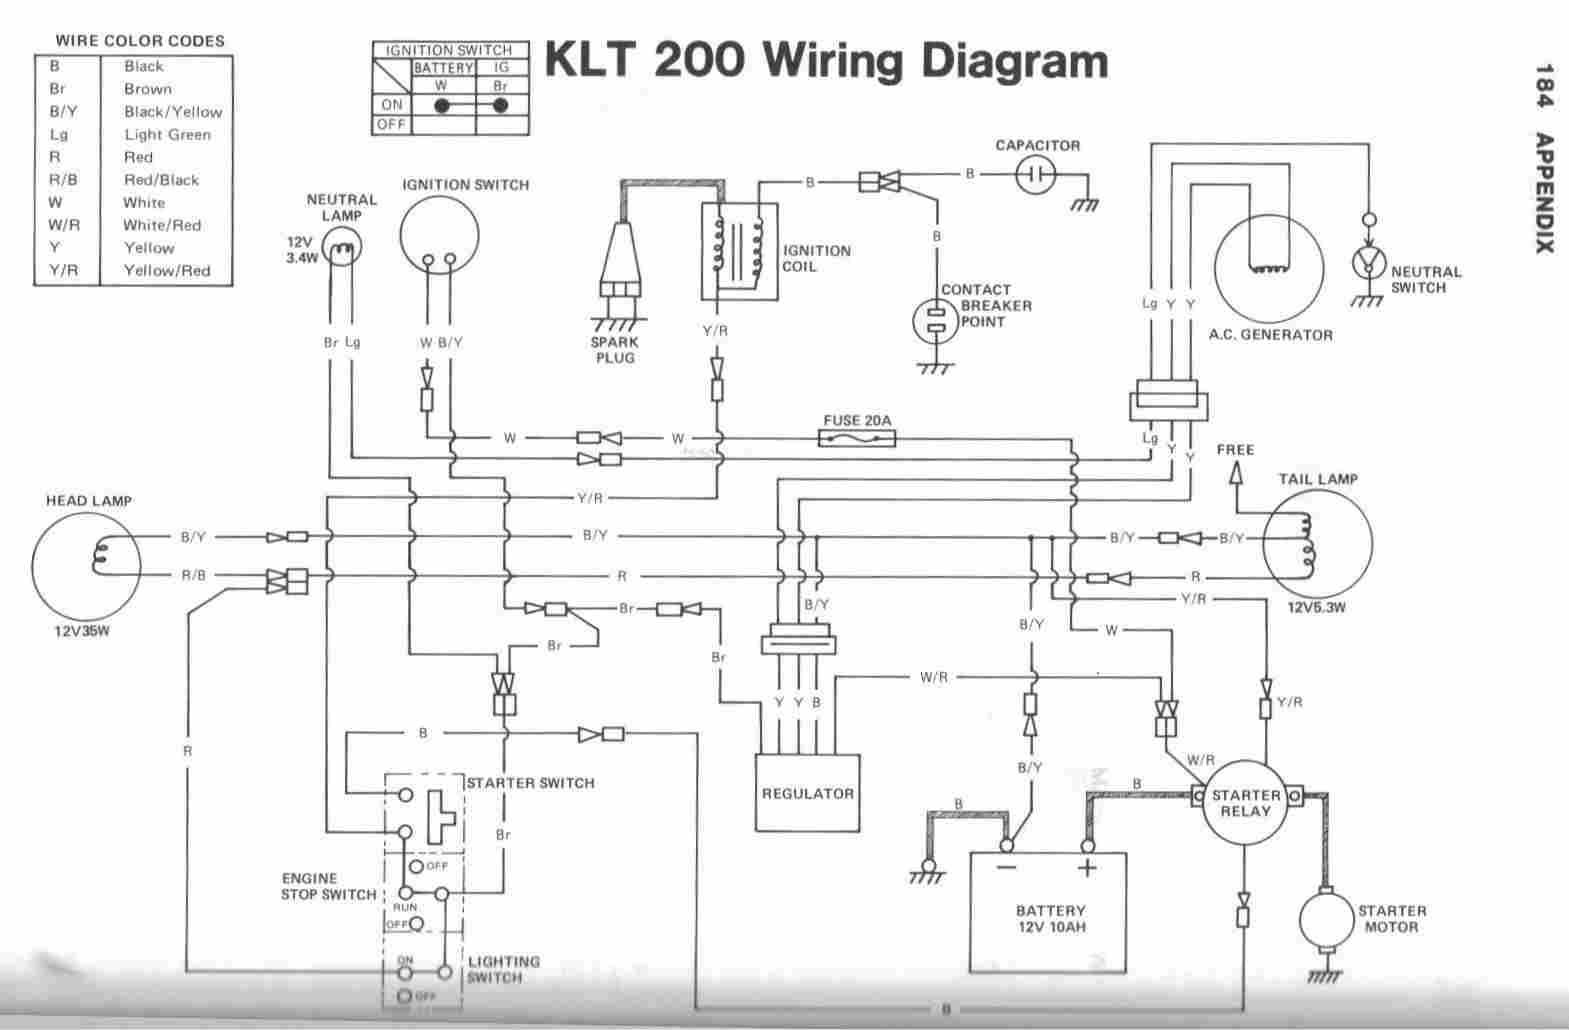 residential electrical wiring diagrams pdf easy routing [ 1569 x 1030 Pixel ]